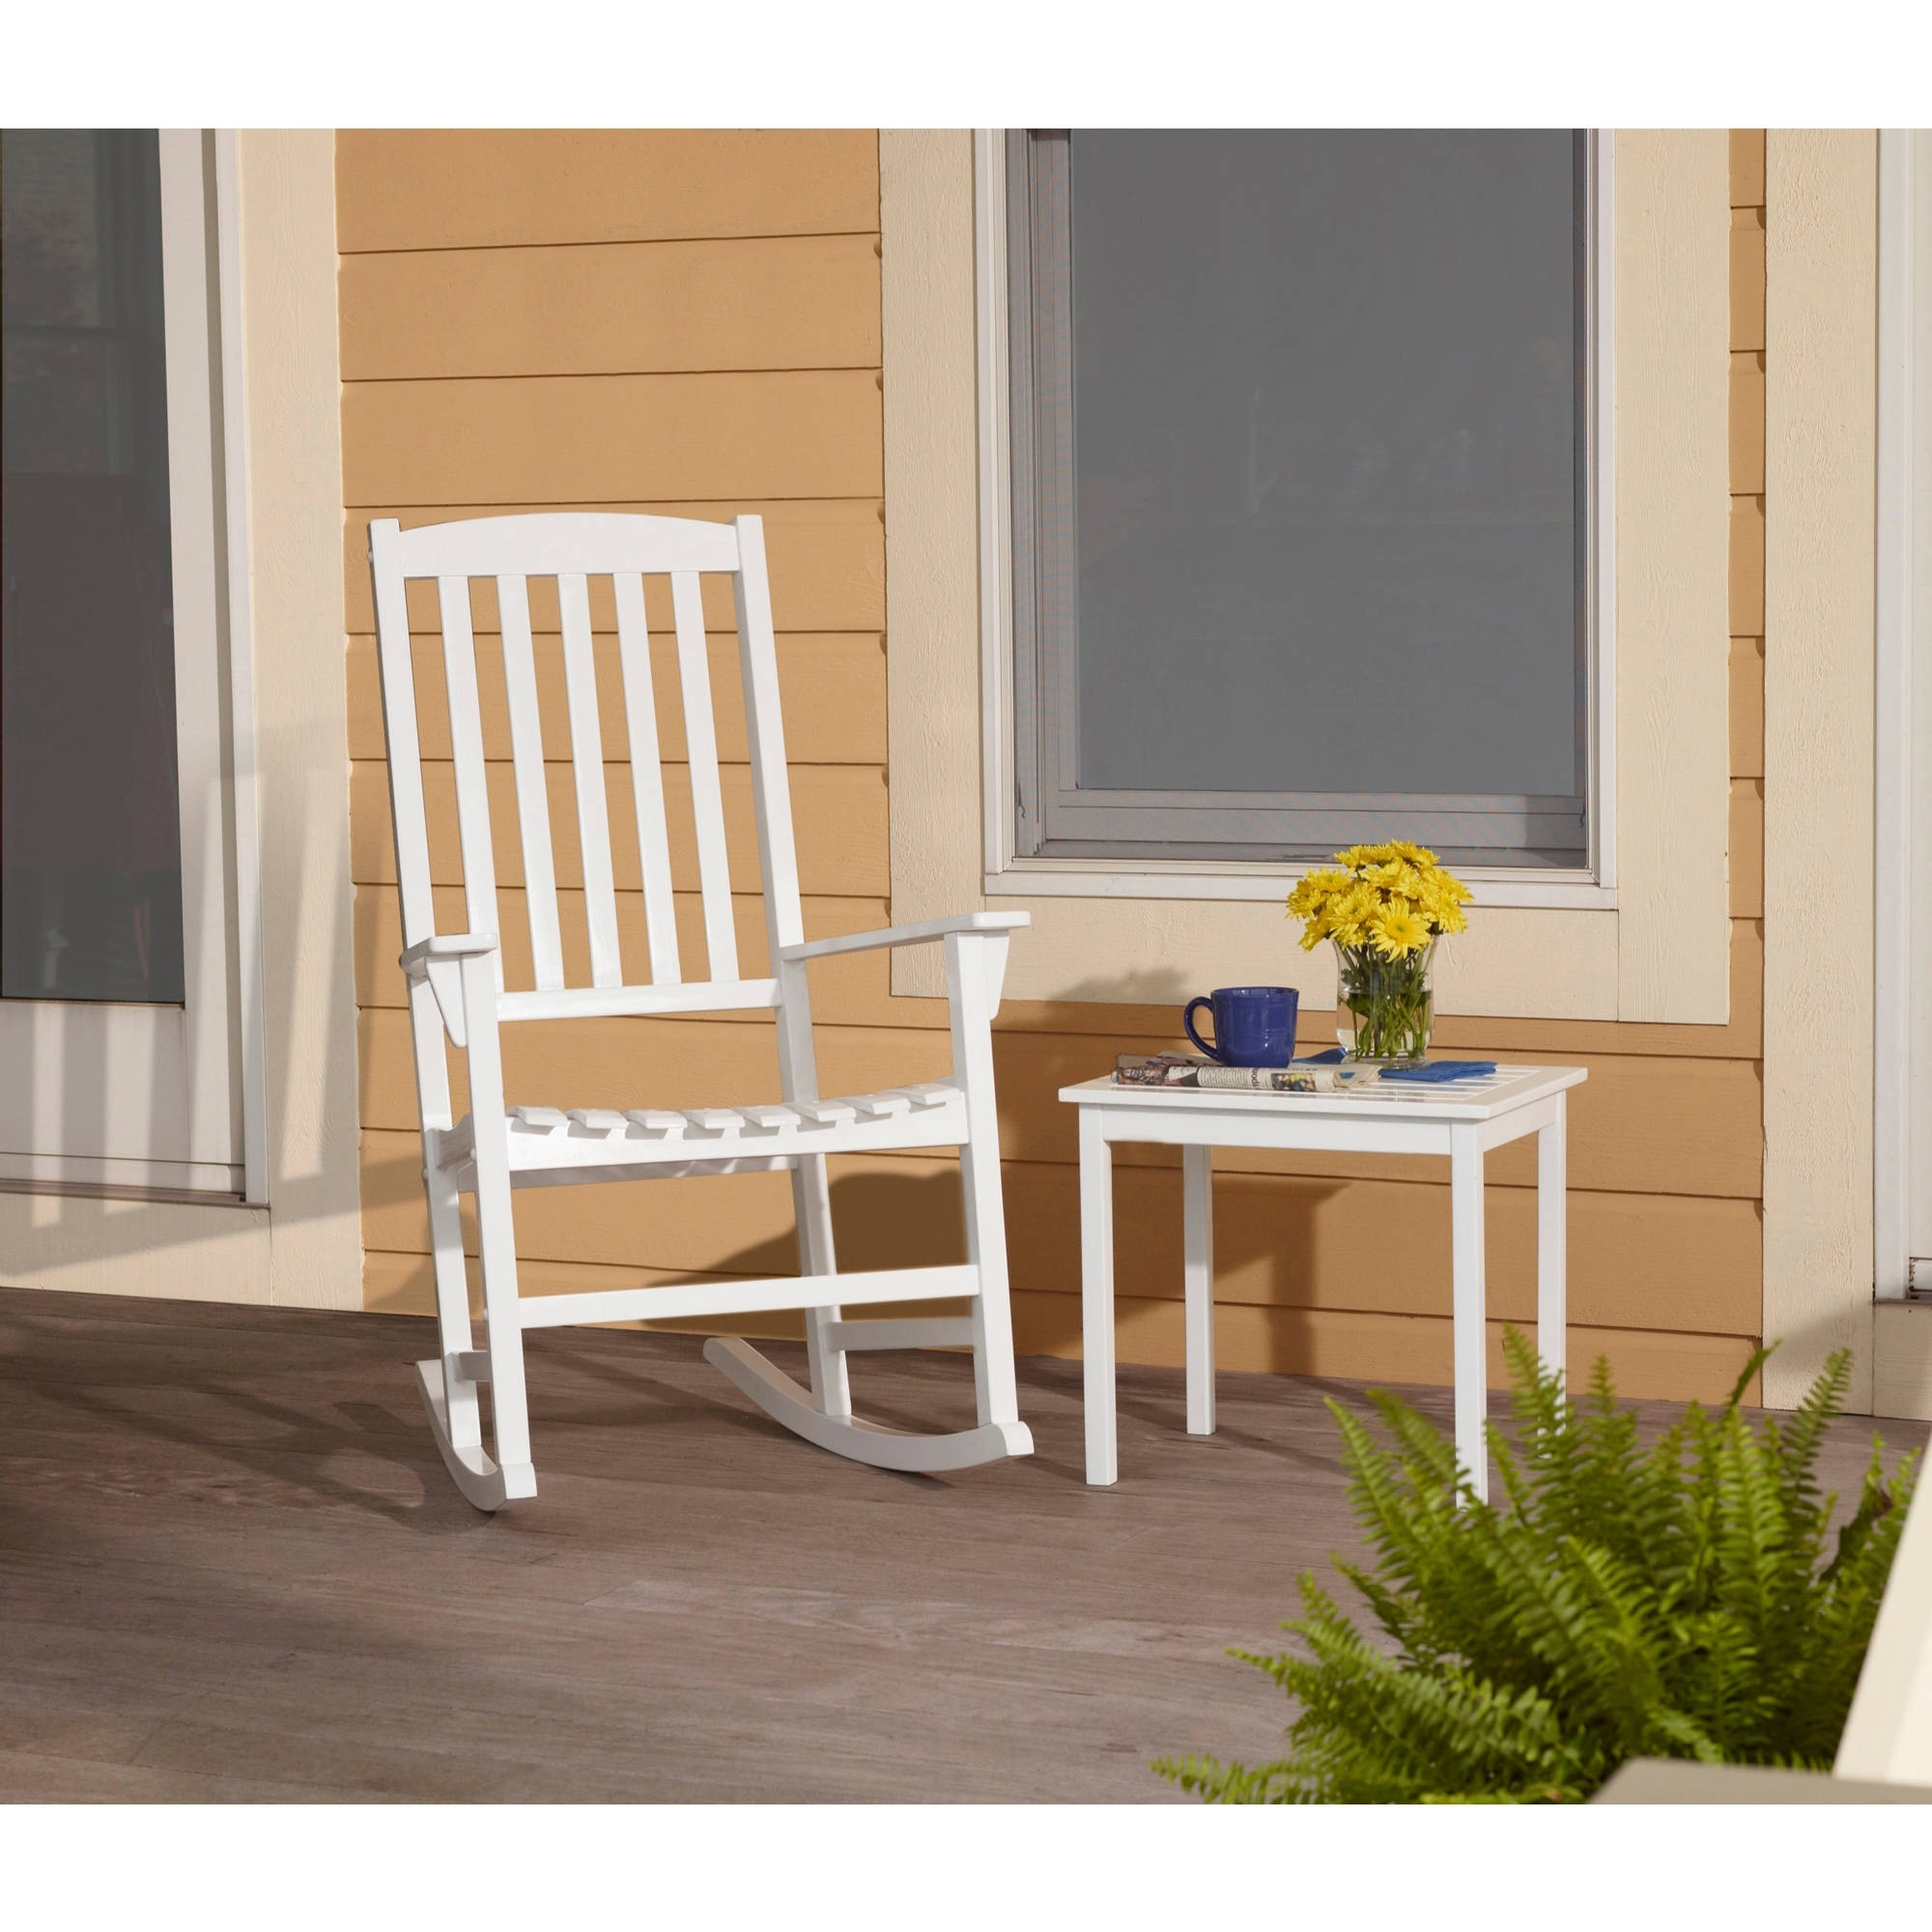 Mainstays Outdoor Rocking Chair, White – Walmart Intended For Preferred Outdoor Vinyl Rocking Chairs (View 7 of 20)